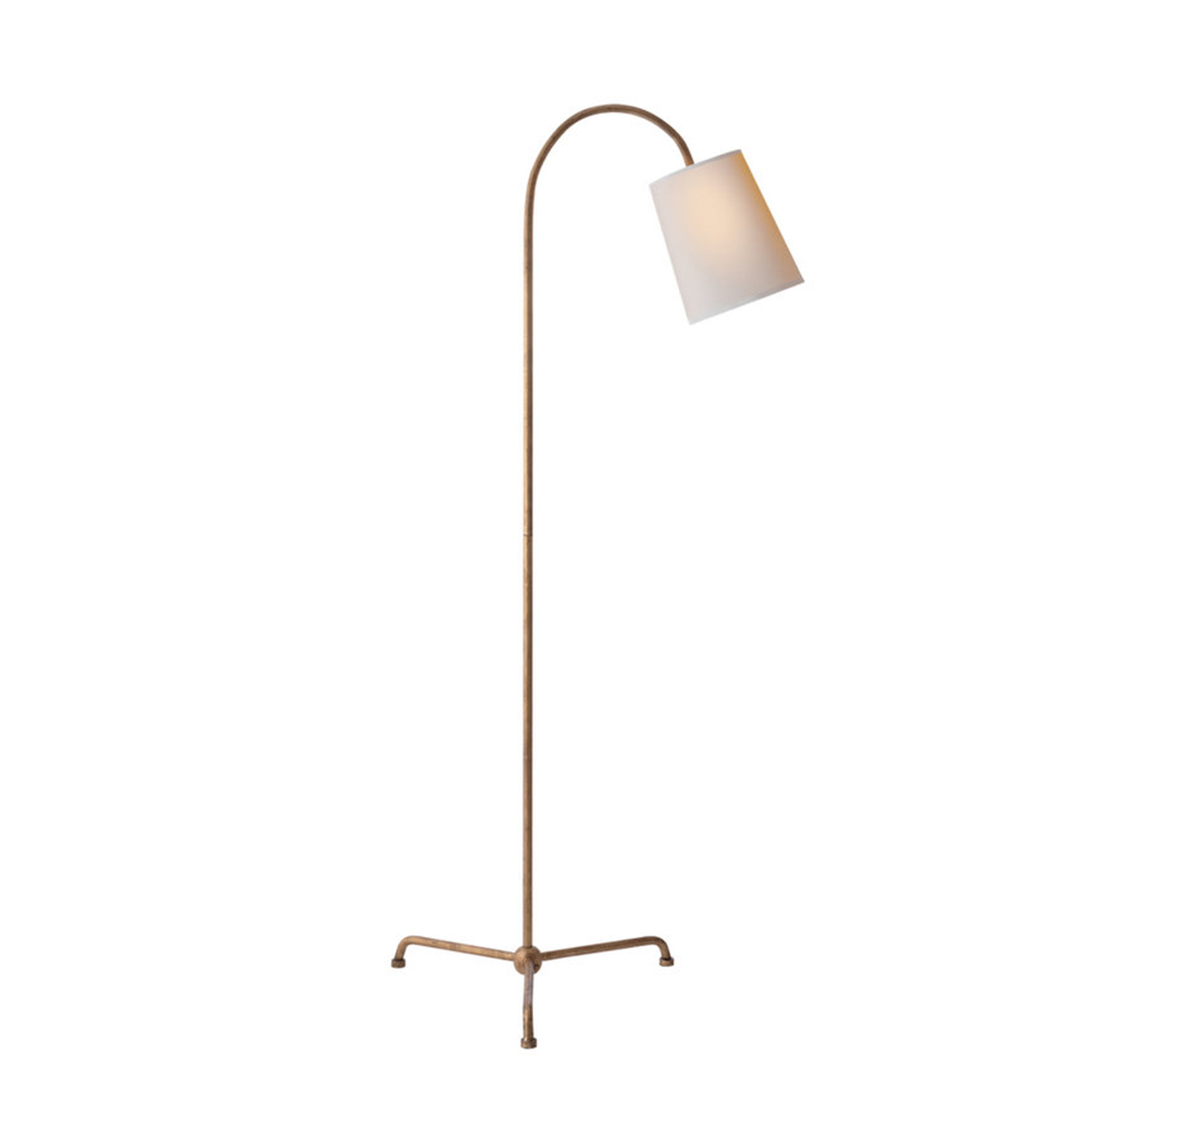 Top 10 brass pharmacy lamps for classical and vintage interiors 2 tripod pharmacy lamp mozeypictures Choice Image